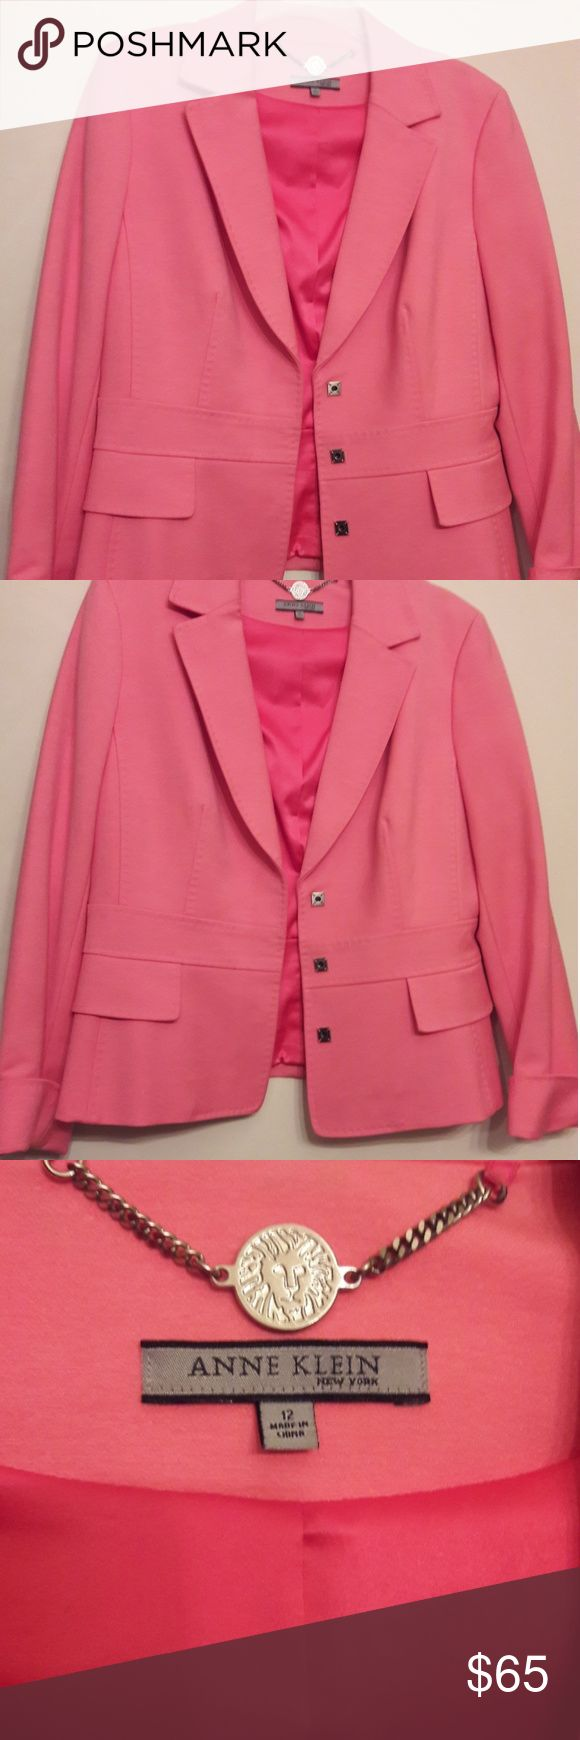 Ann Klein tailored jacket. Silk and cotton blend fabric. Fully lined, hand stitched, cuff sleeves, snap closures, size 12. Purchased at a resale store, never worn, and appears brand new Ann Klein Jackets & Coats Blazers